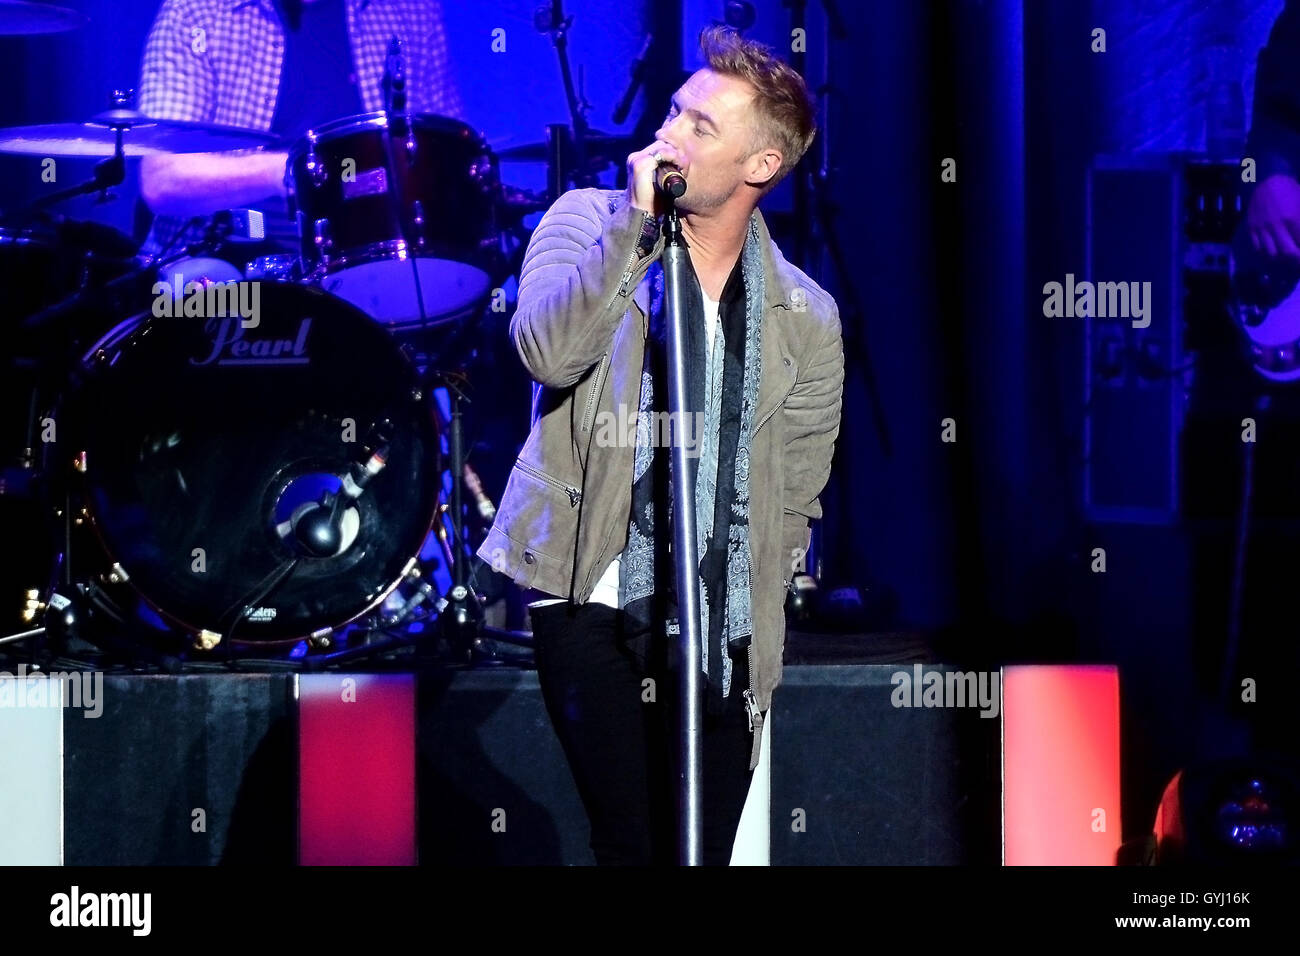 Ronan Keating Time of My Life Tour at Newcastle City Hall, Newcastle Upon Tyne | Wed 14th September 2016 - Stock Image